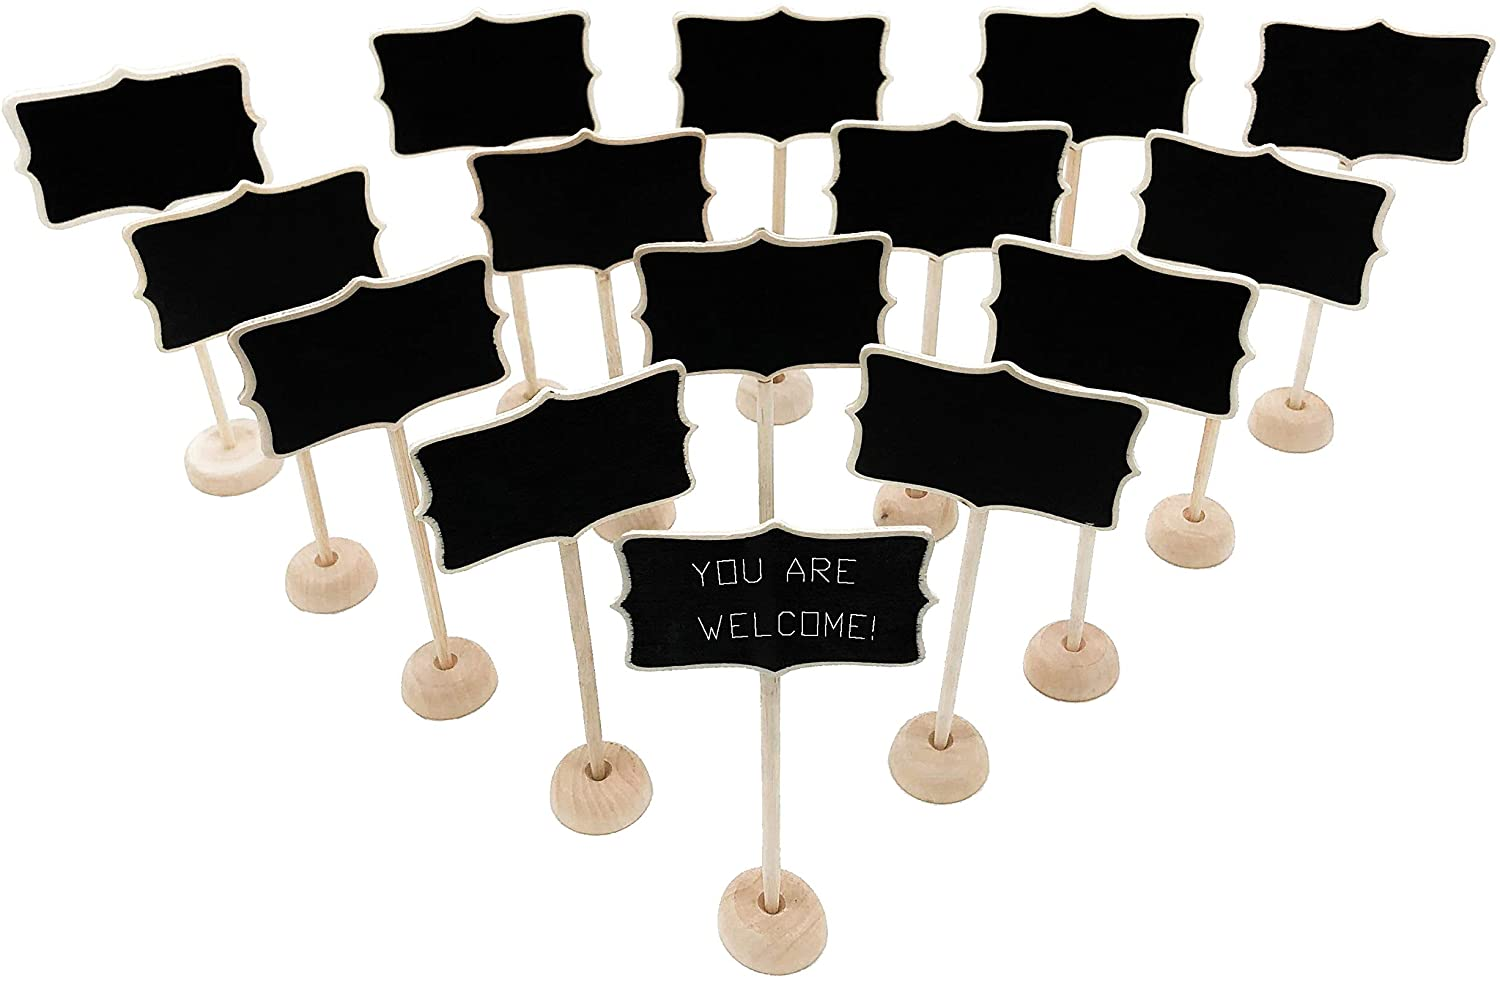 15 Pack Wood Mini Chalkboard Signs with Place National products Ca Gifts Support Easels